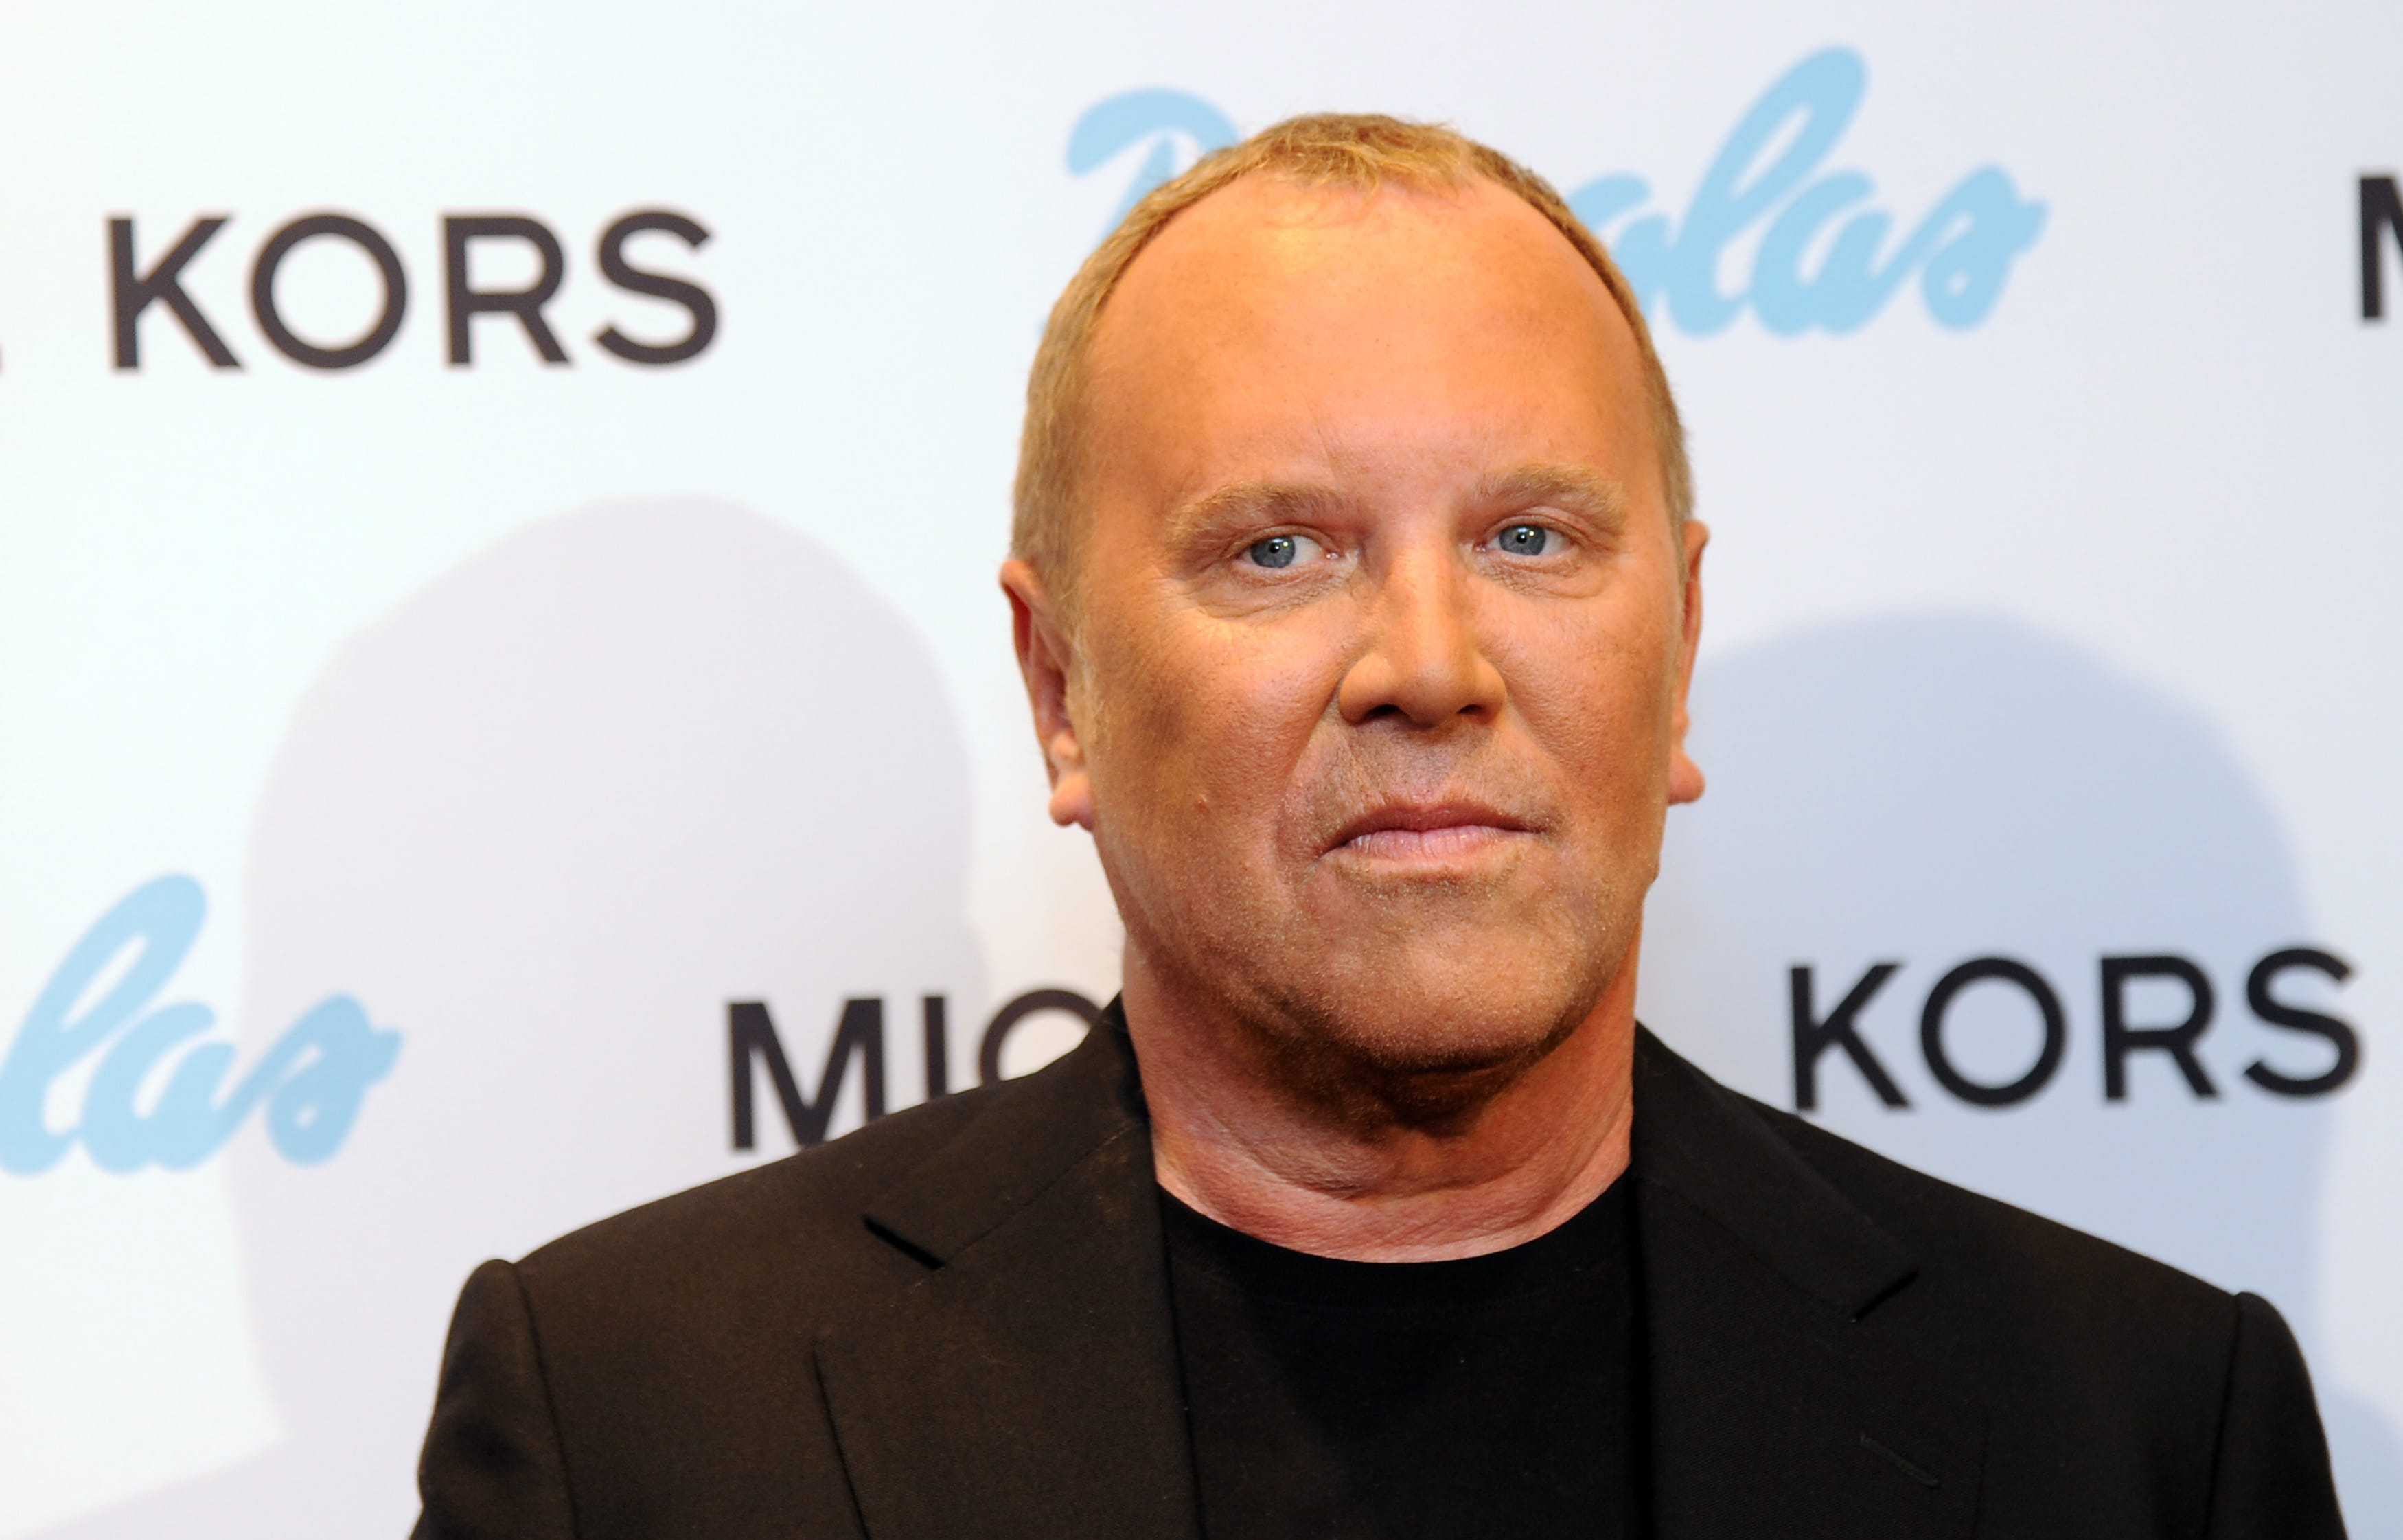 6a8f2081cc4c Michael Kors plans to shutter 100 to 125 stores; shares tumble 9%